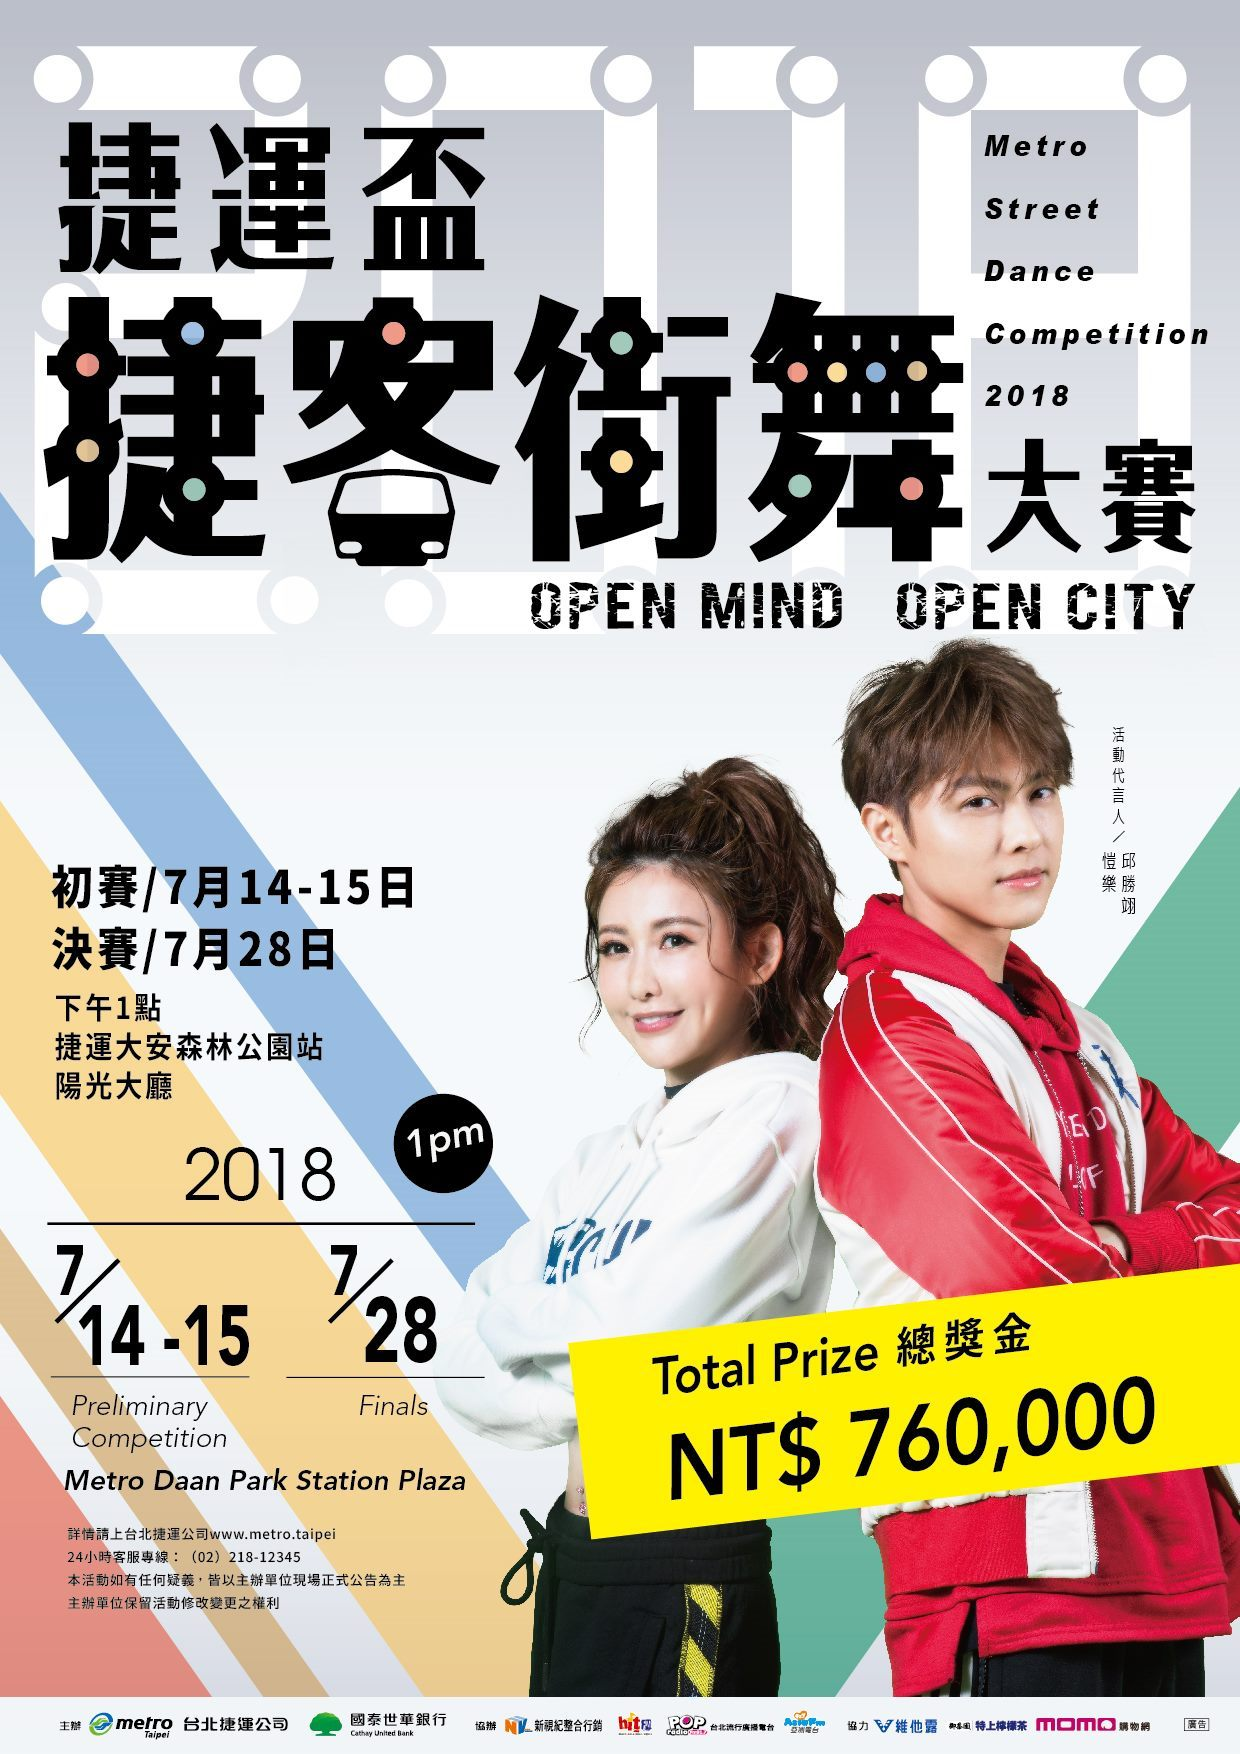 Poster of MRT Street Dance Competition